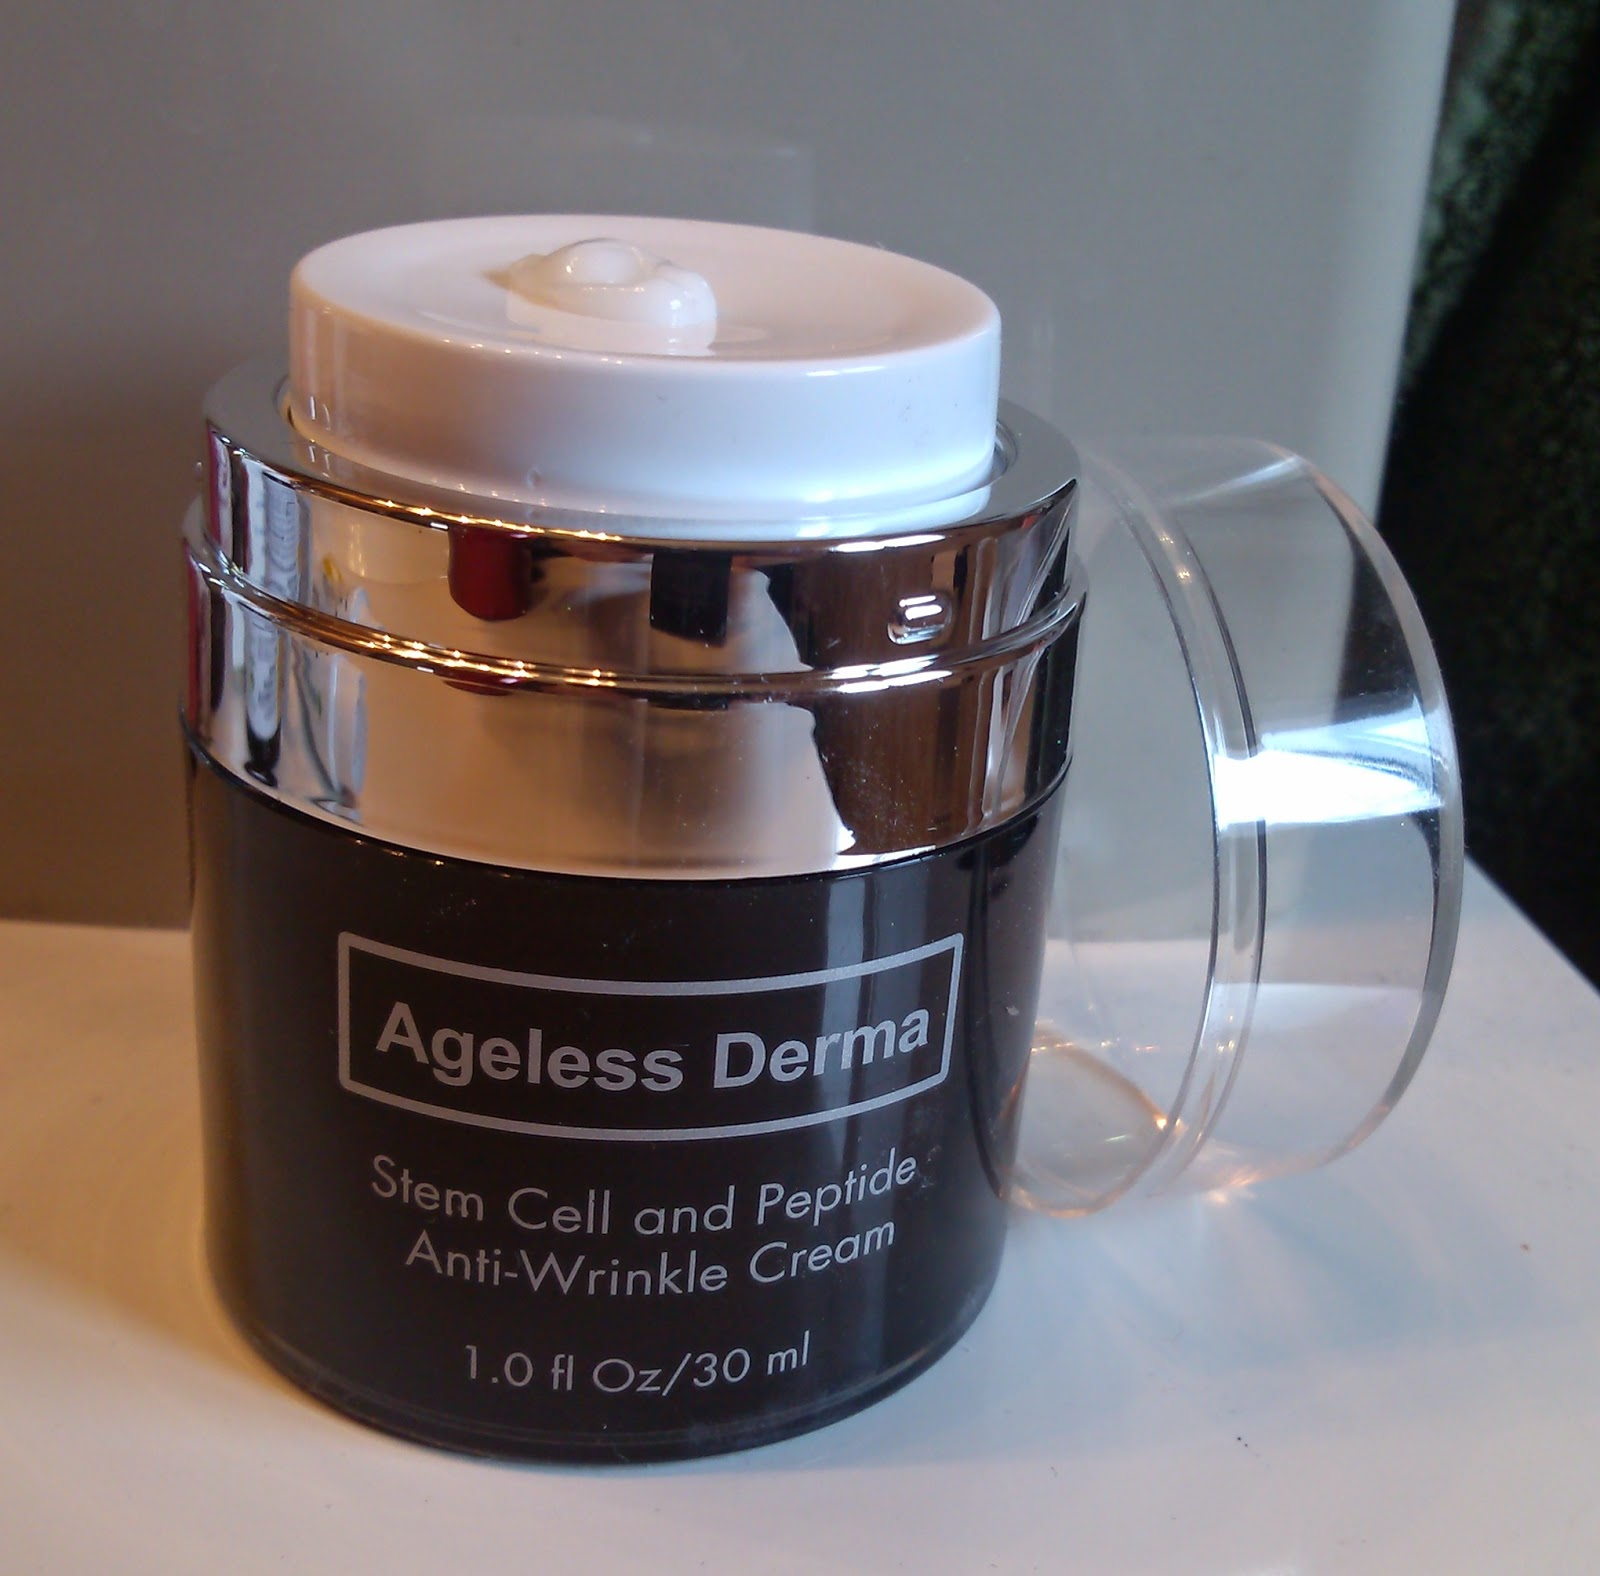 Ageless Derma Anti-Wrinkle Cream Review